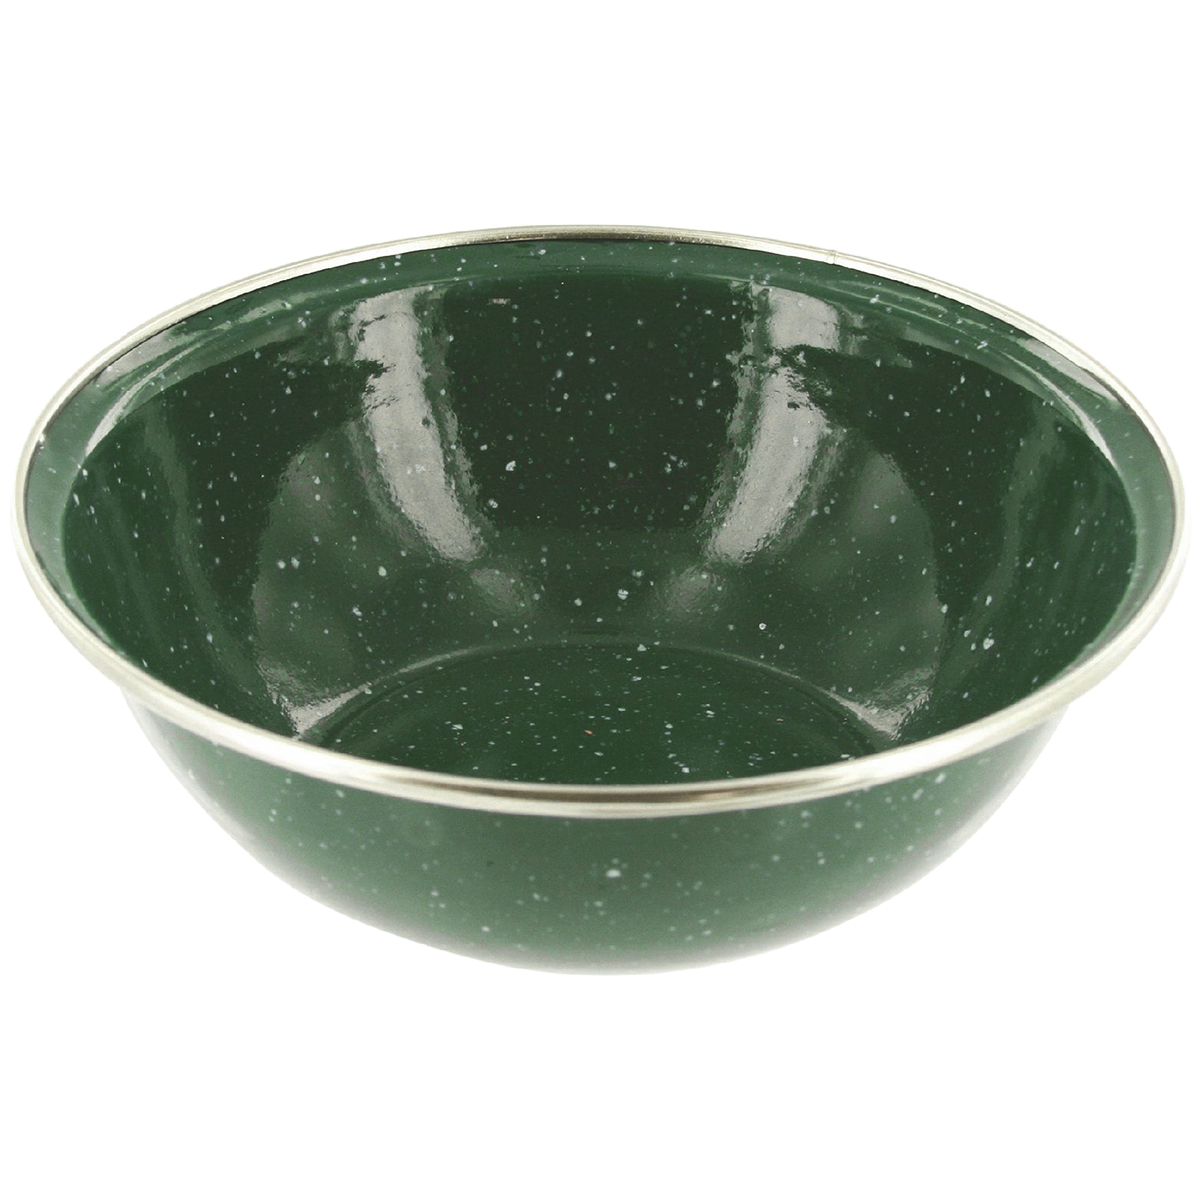 Sentinel Highlander Deluxe Enamel Bowl Camping Metal Dinner Plate Army Travel Dish Green